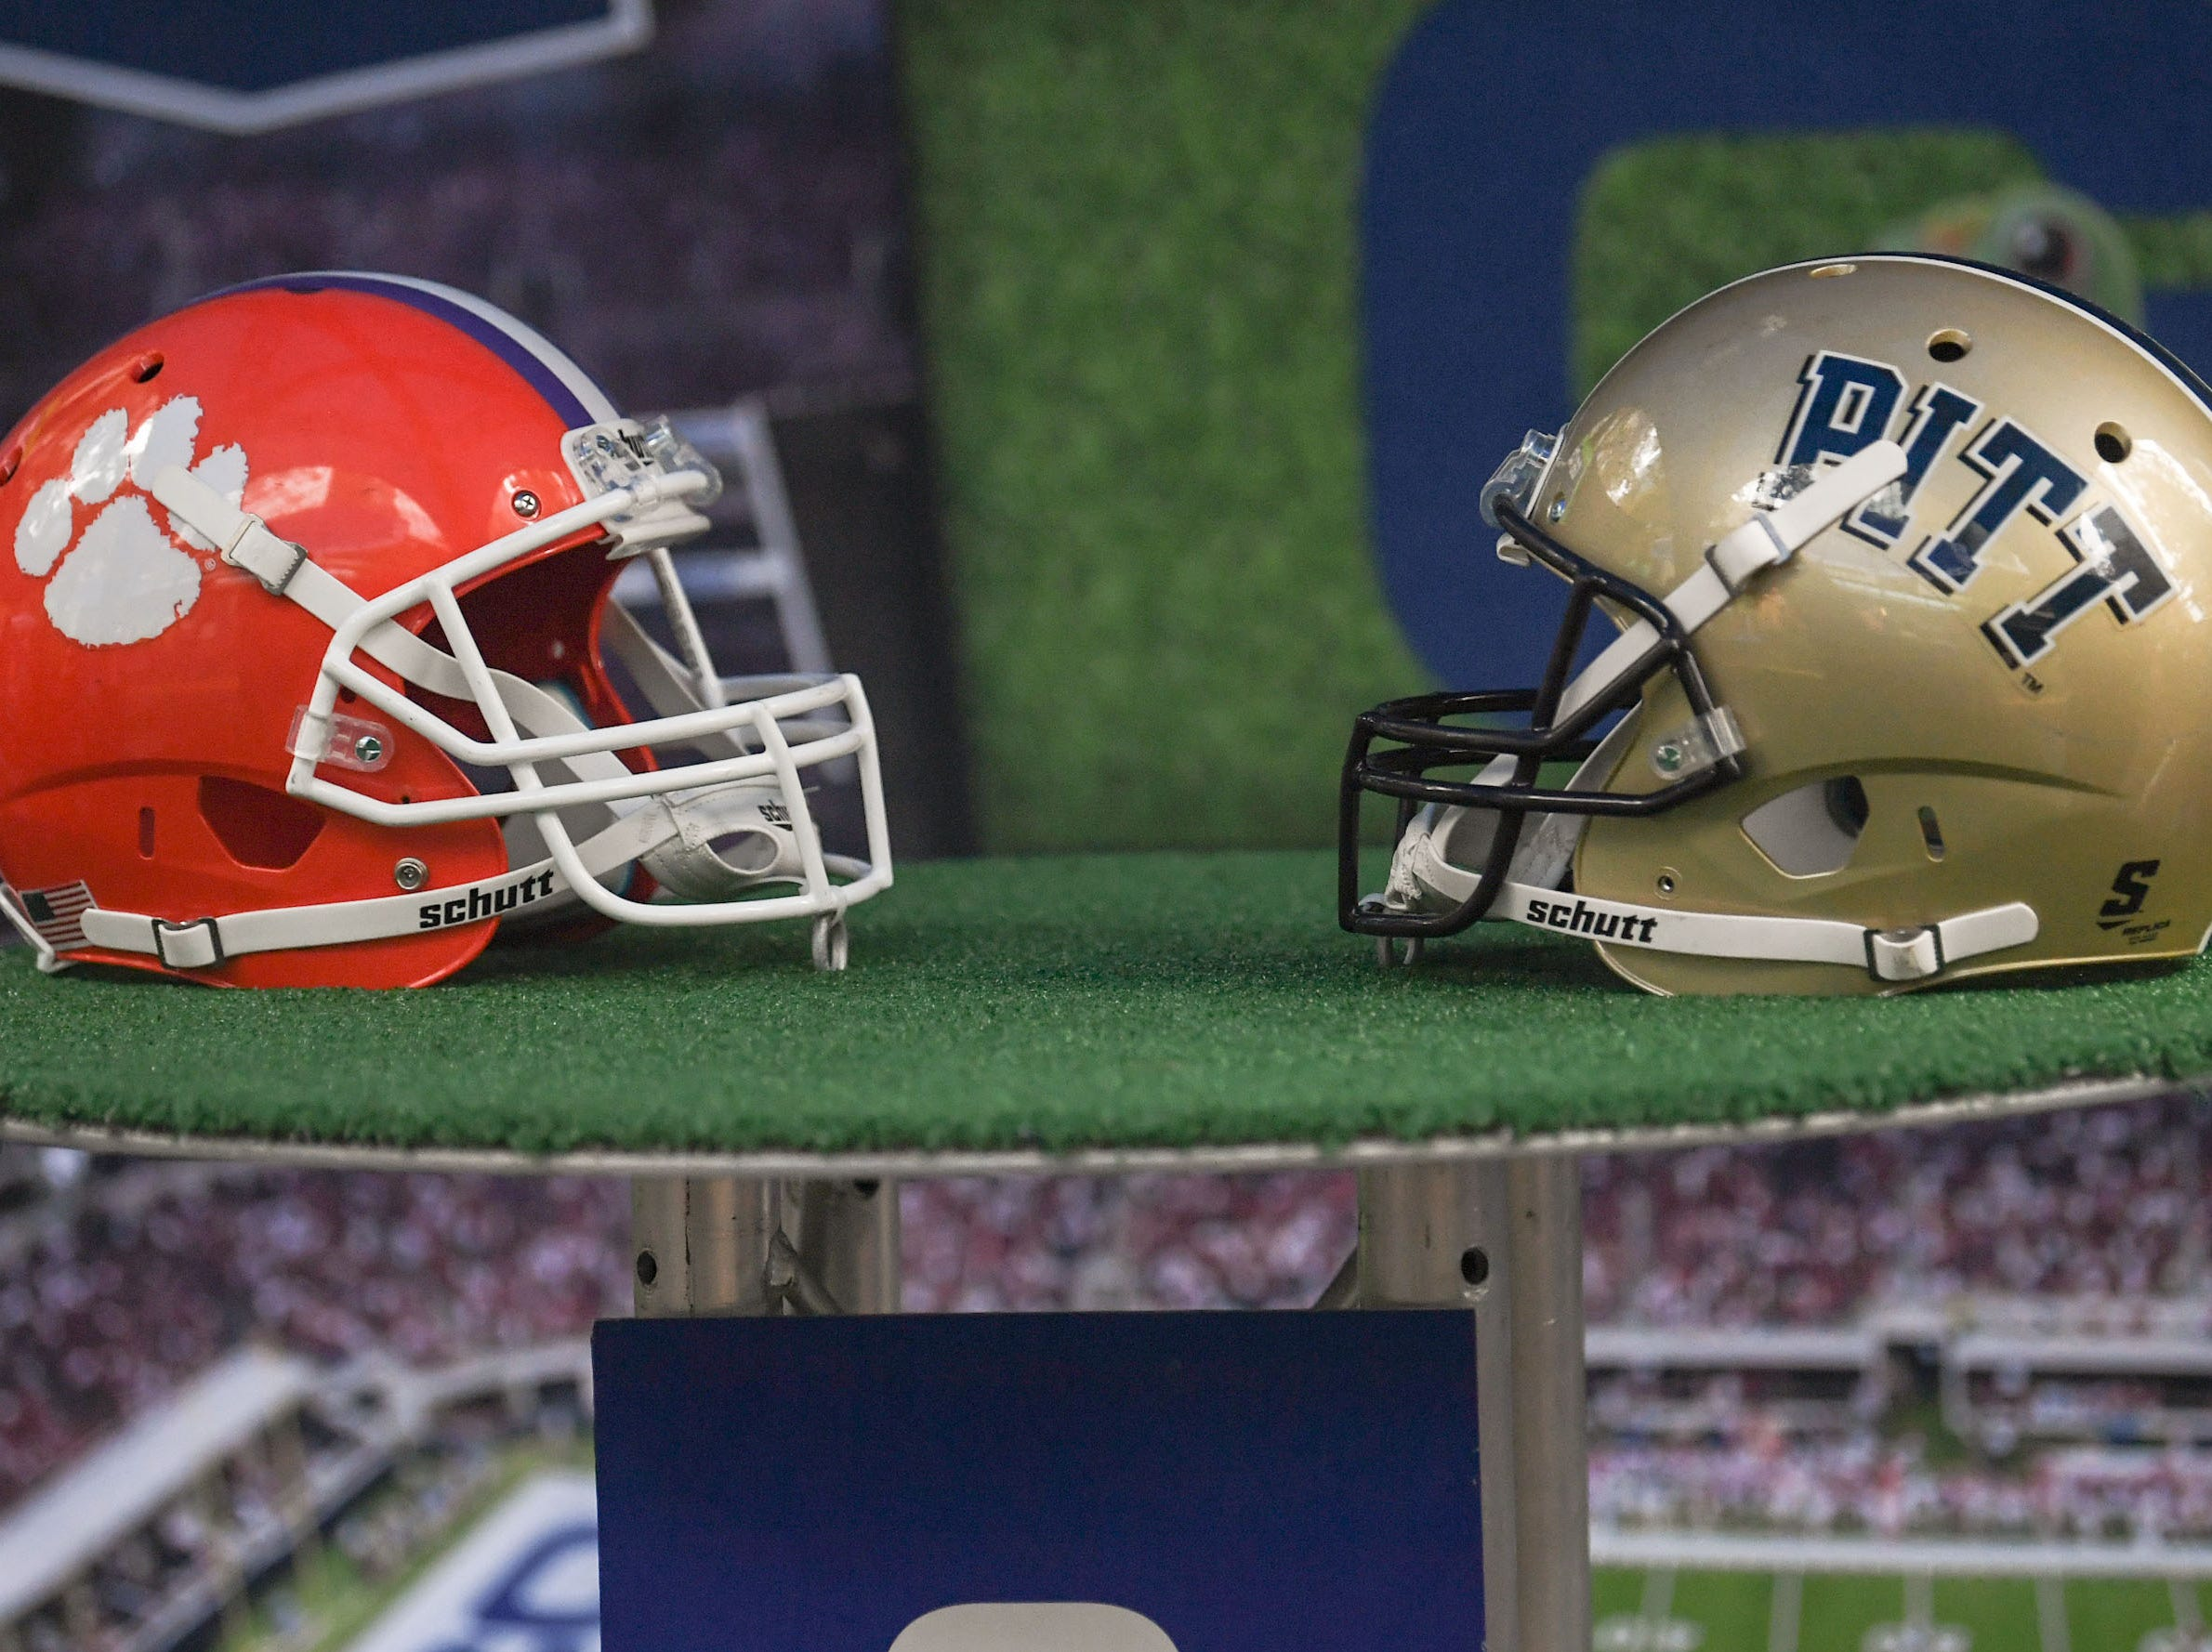 A Clemson and Pitt helmet on display at the ACC Fan Fest in downtown Charlotte on Saturday, December 1, 2018.